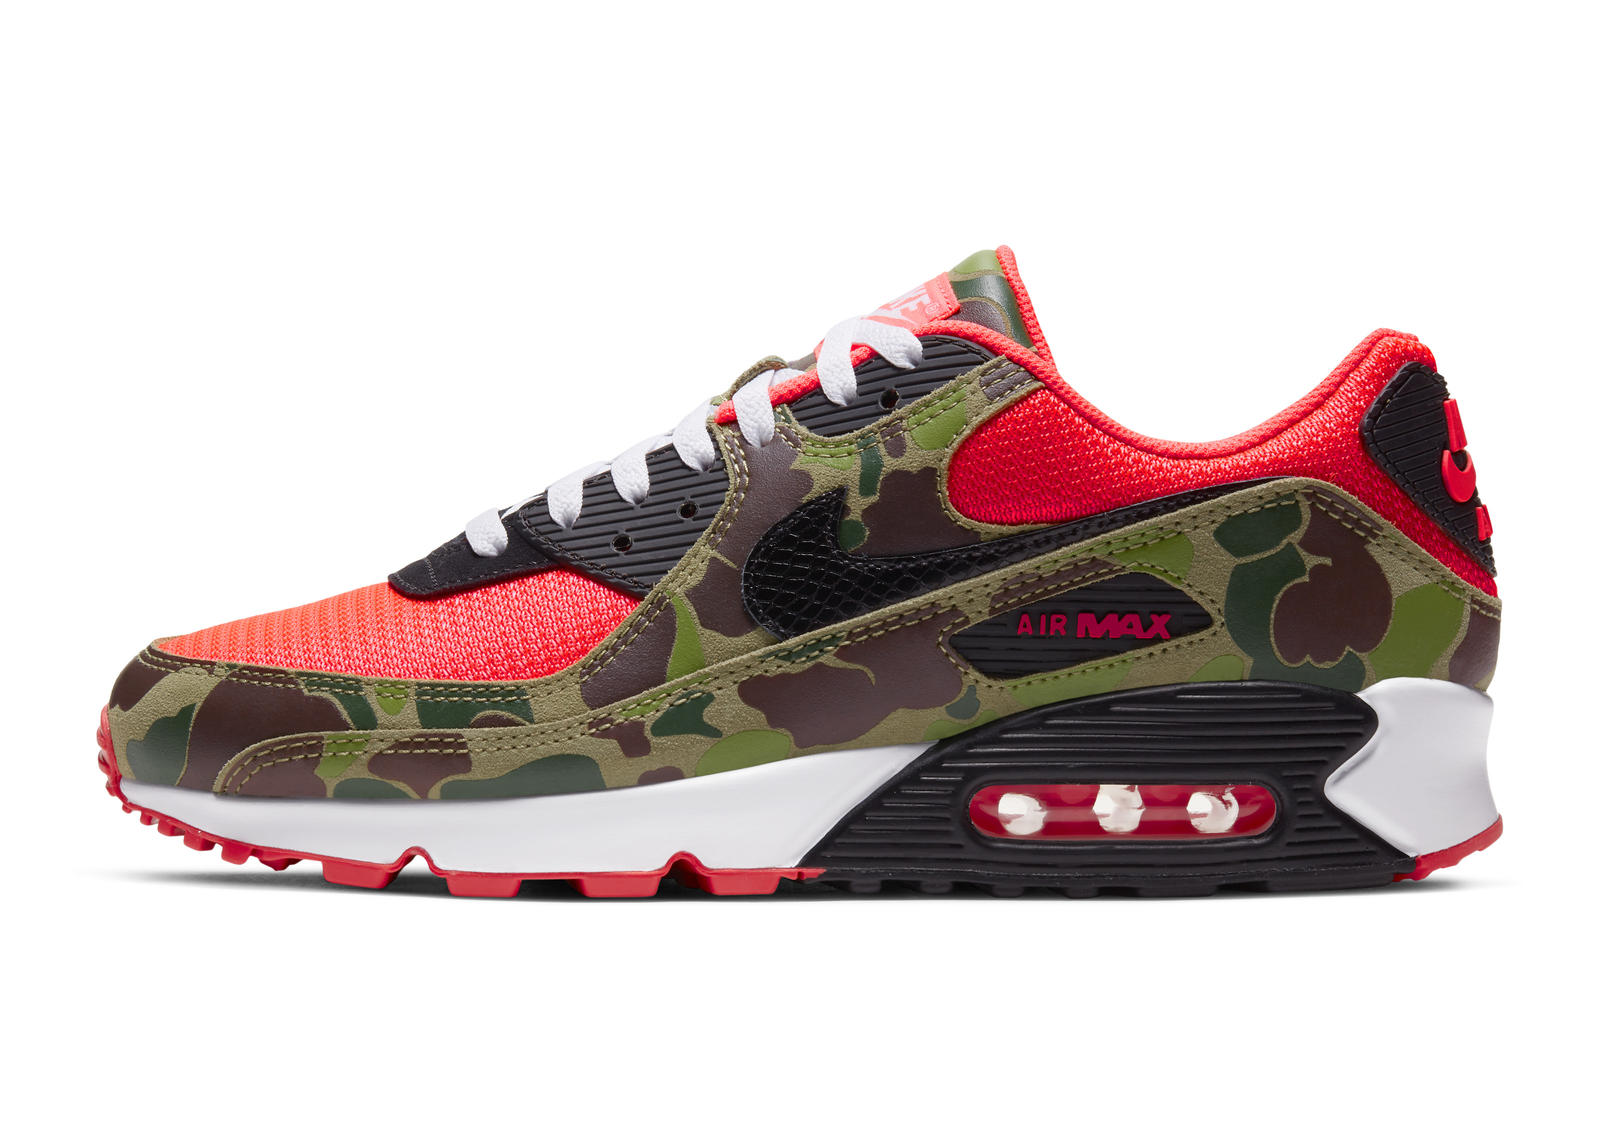 Air Max Duck Camo Pack, air max day, nike, sneakers